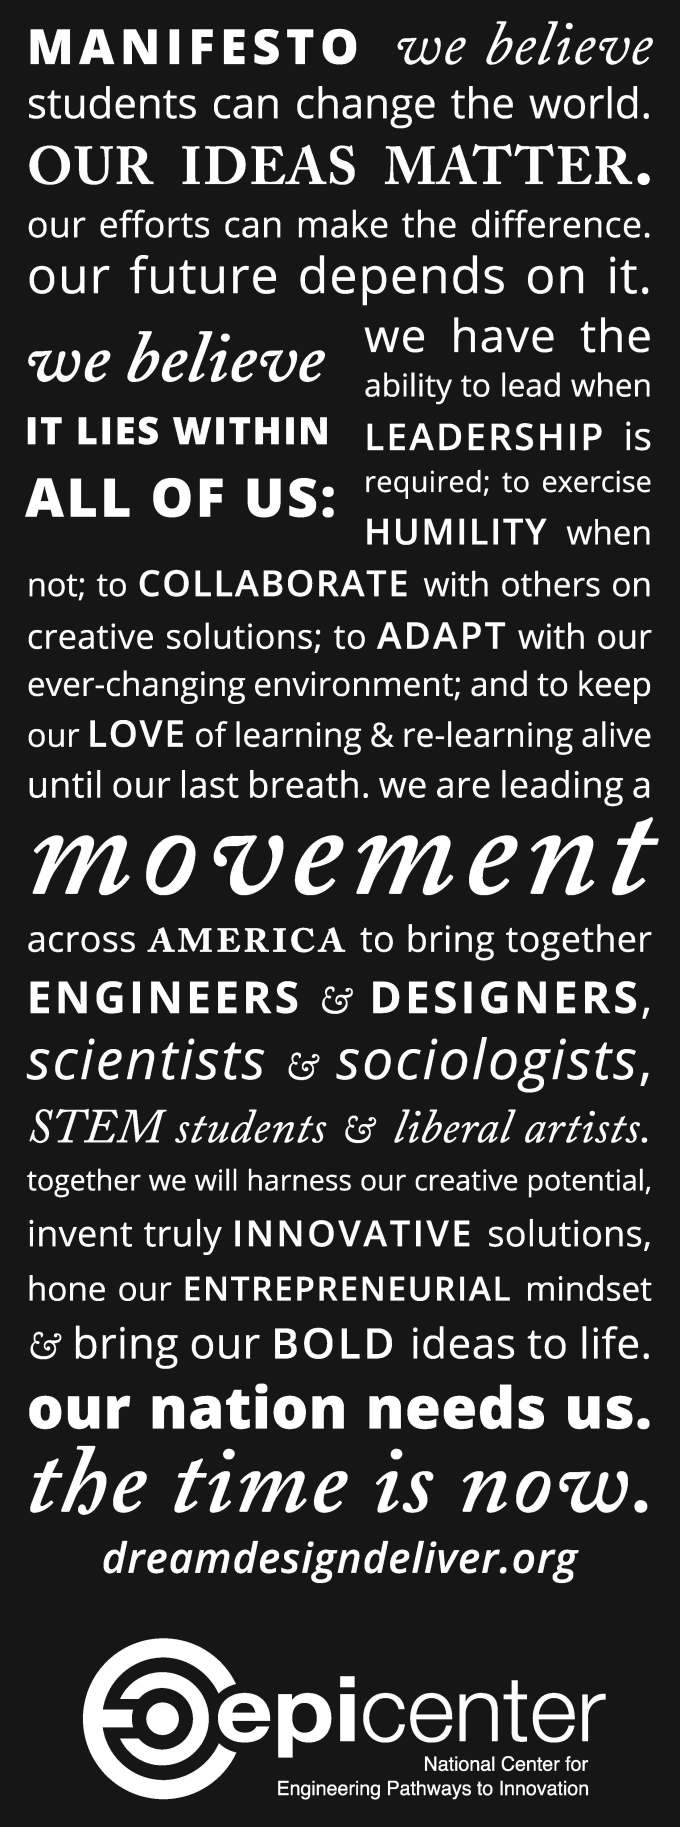 manifesto_students_can_change_the_world